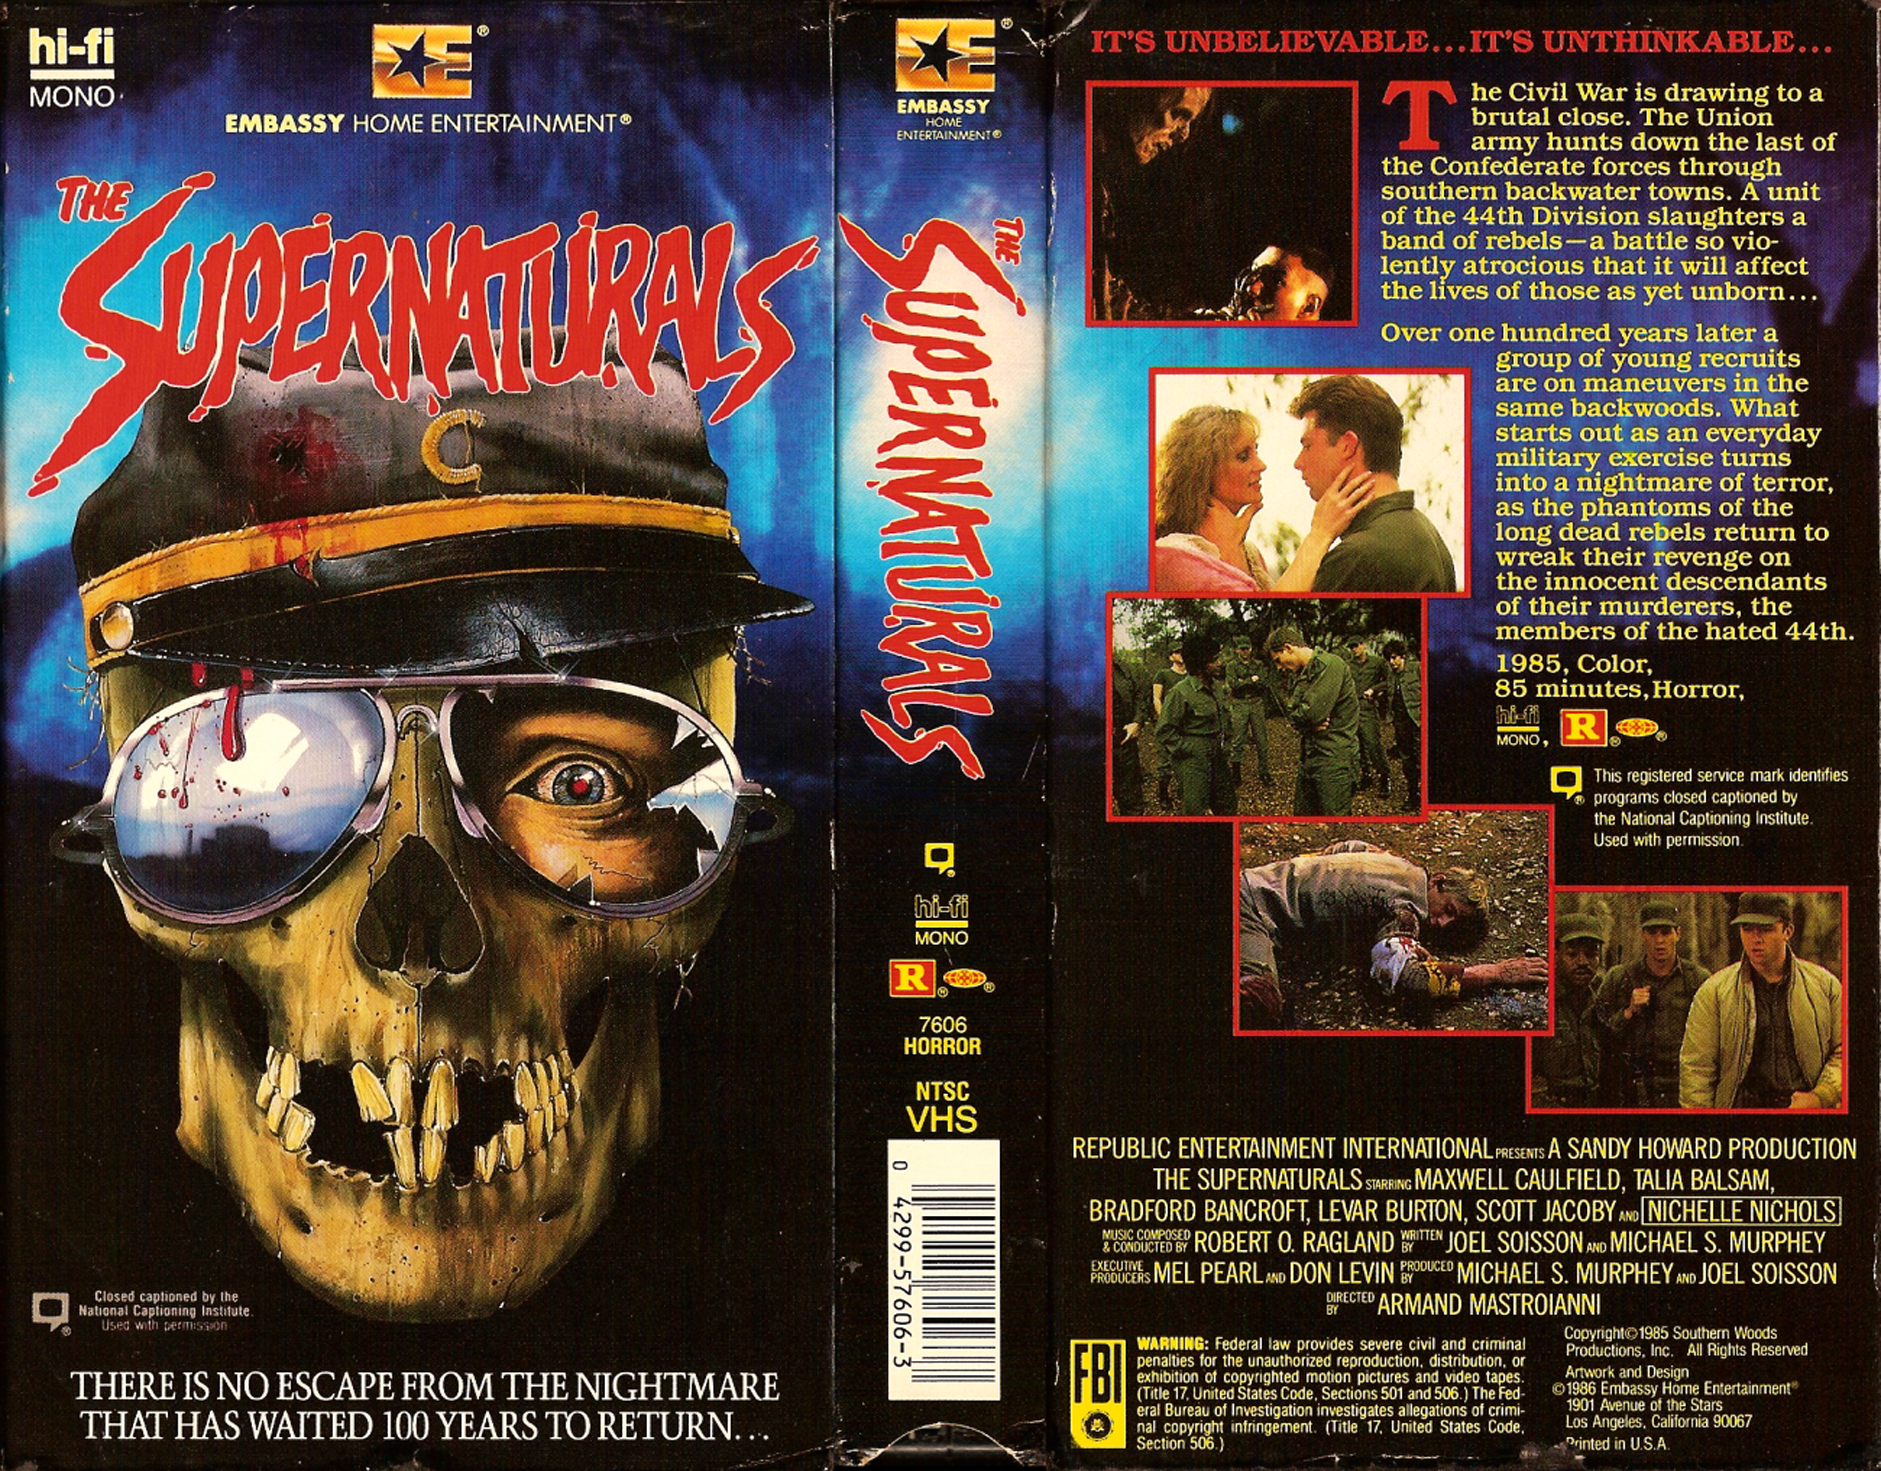 THE-SUPERNATURALS-HORROR-VHS